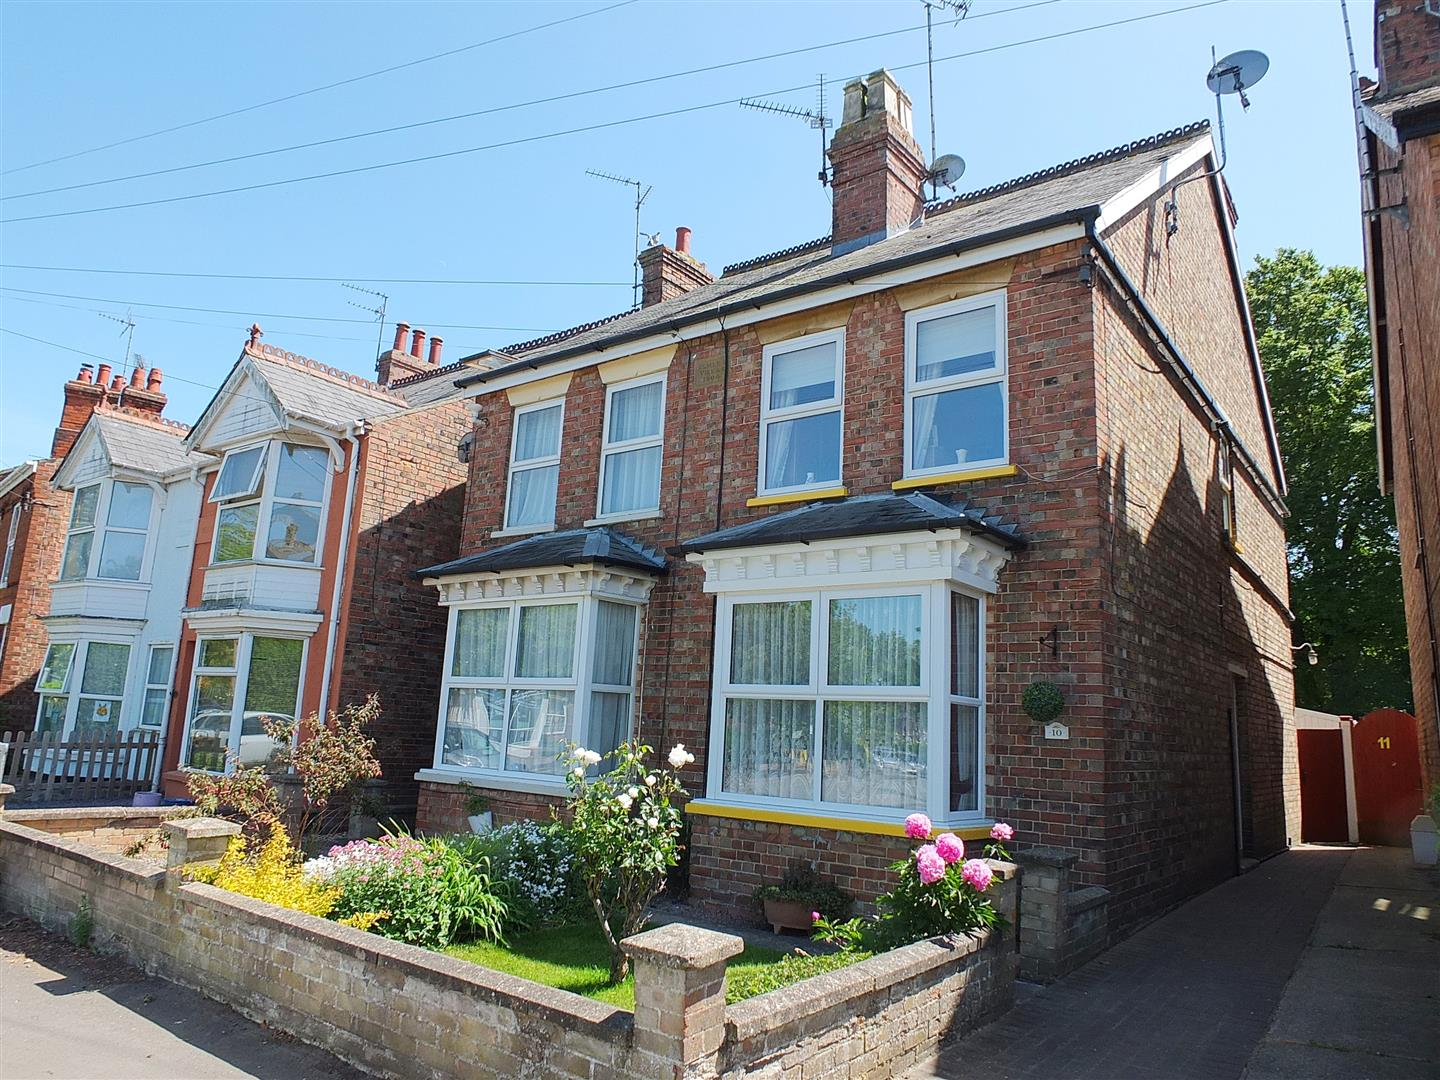 3 bed semi-detached house for sale in Long Sutton Spalding, PE12 9HB  - Property Image 1